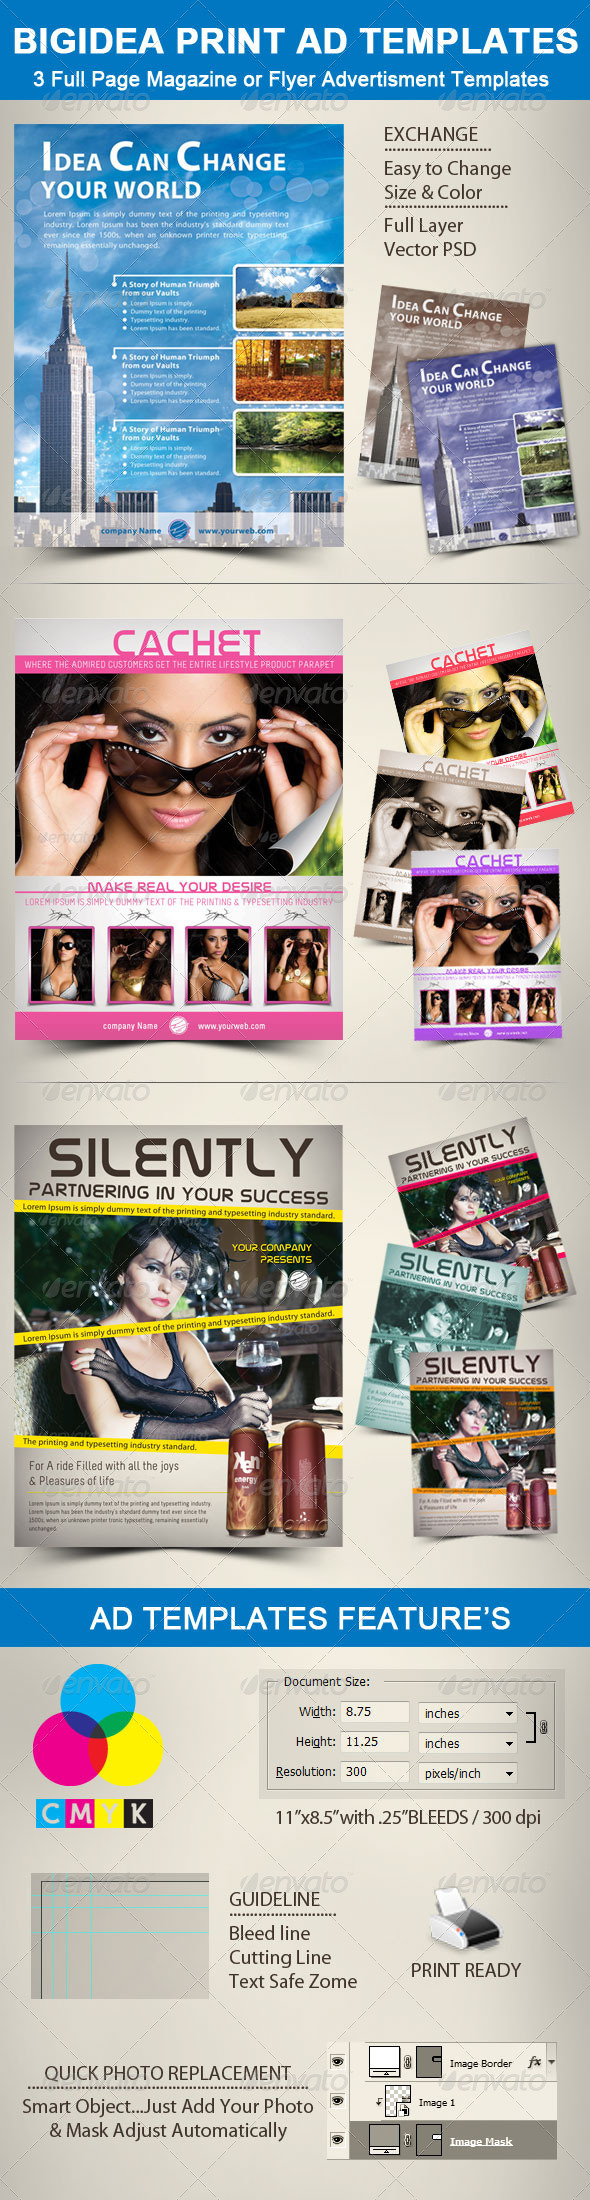 BigIdea Print Ad Templates - Commerce Flyers